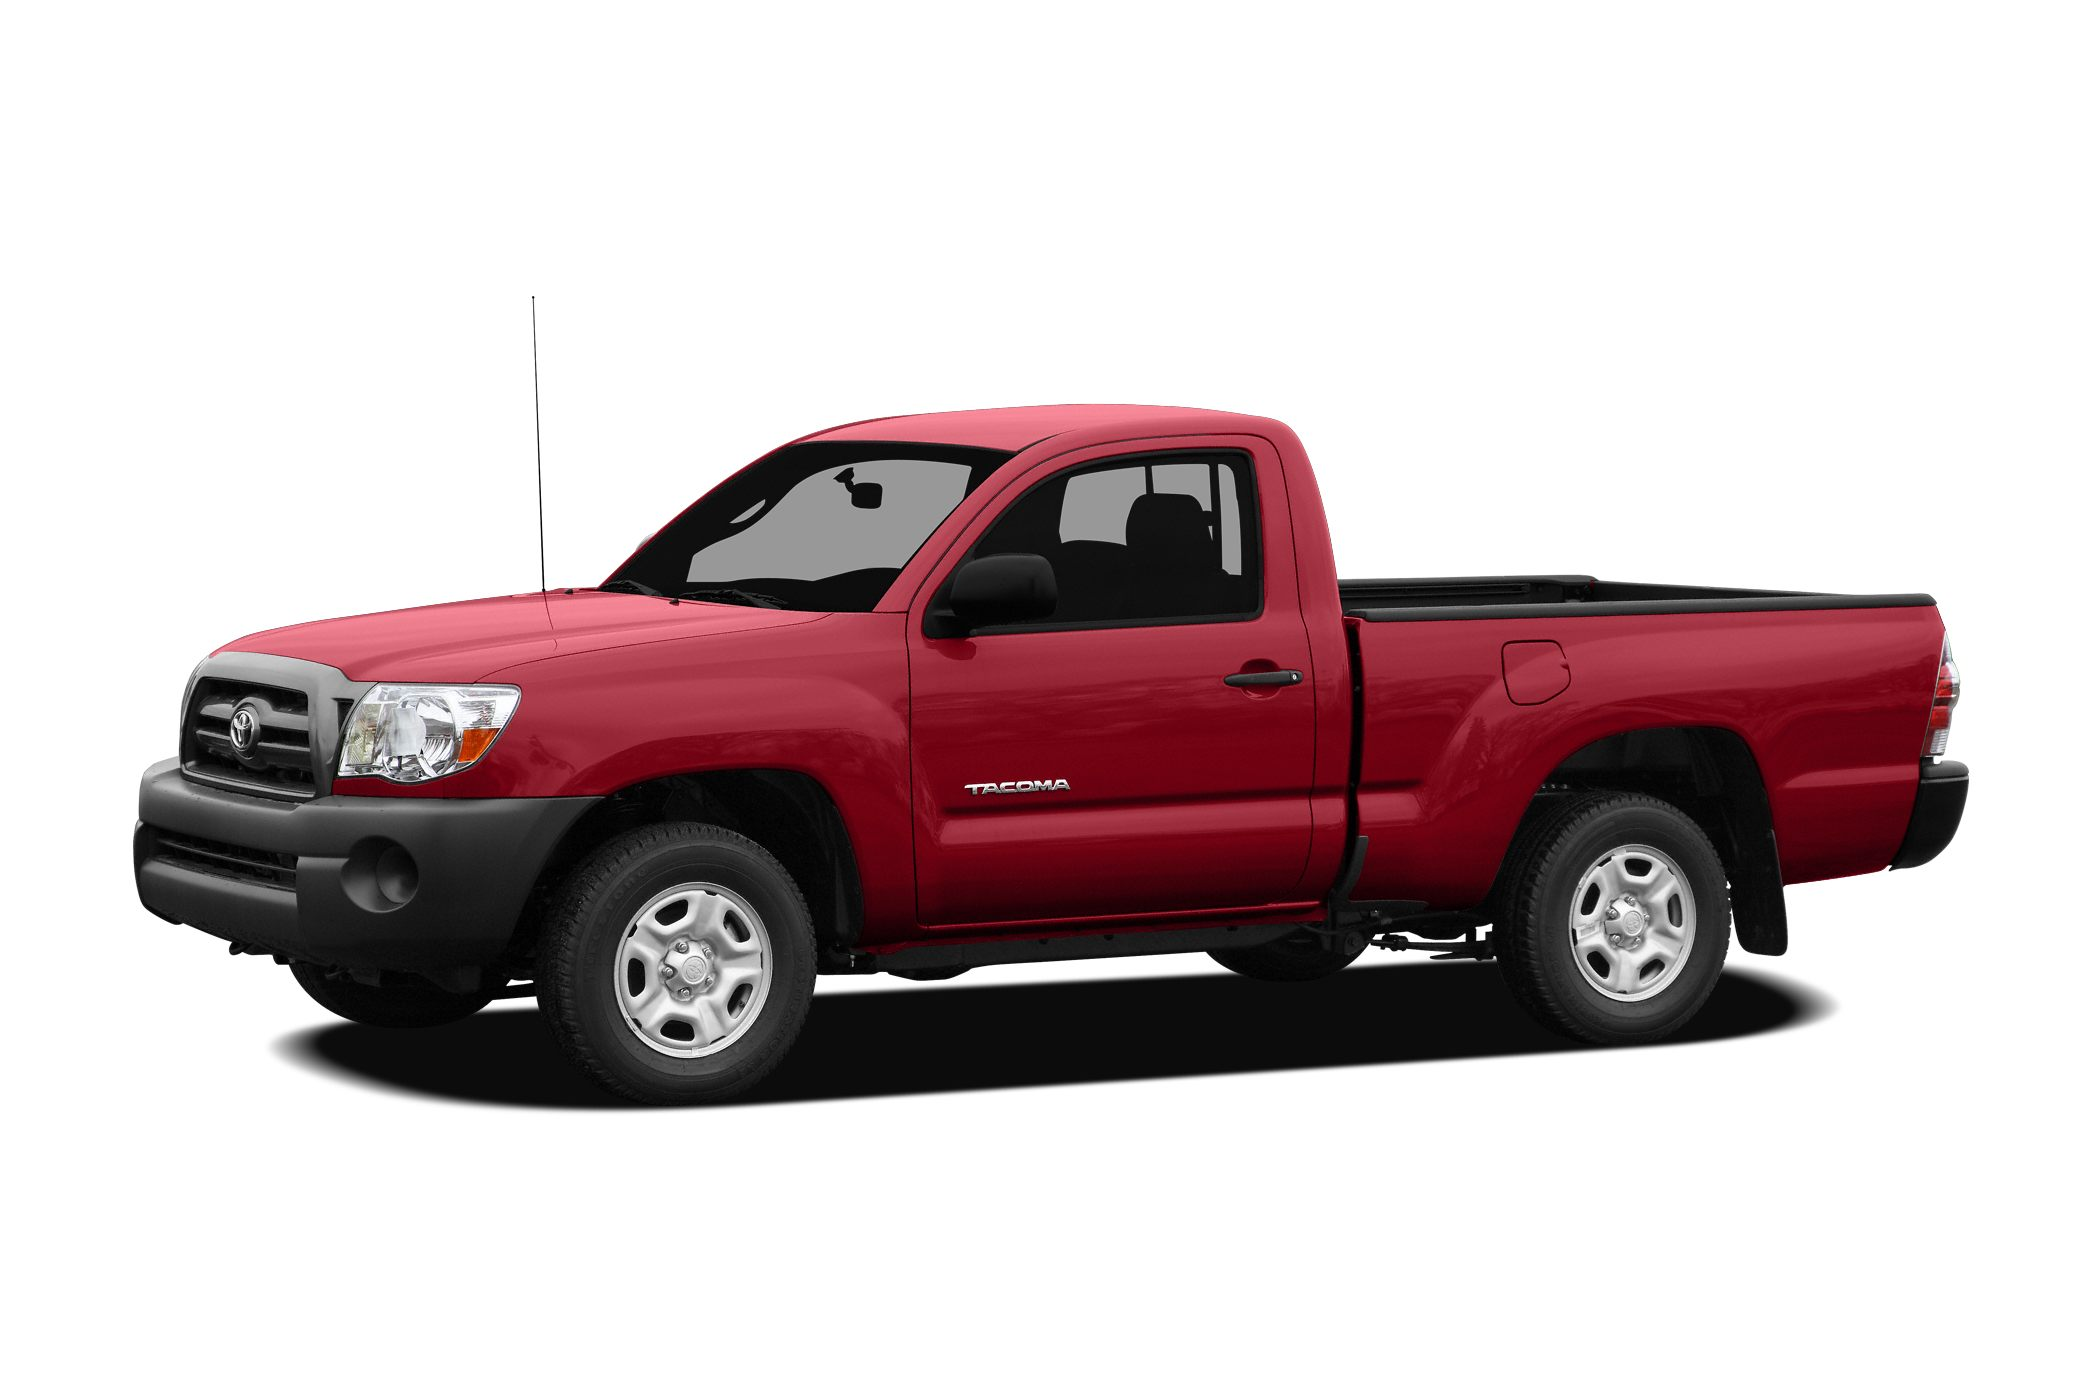 Toyota Tacoma Owners Manual: Operating the sub woofer (on some Access Cab models)